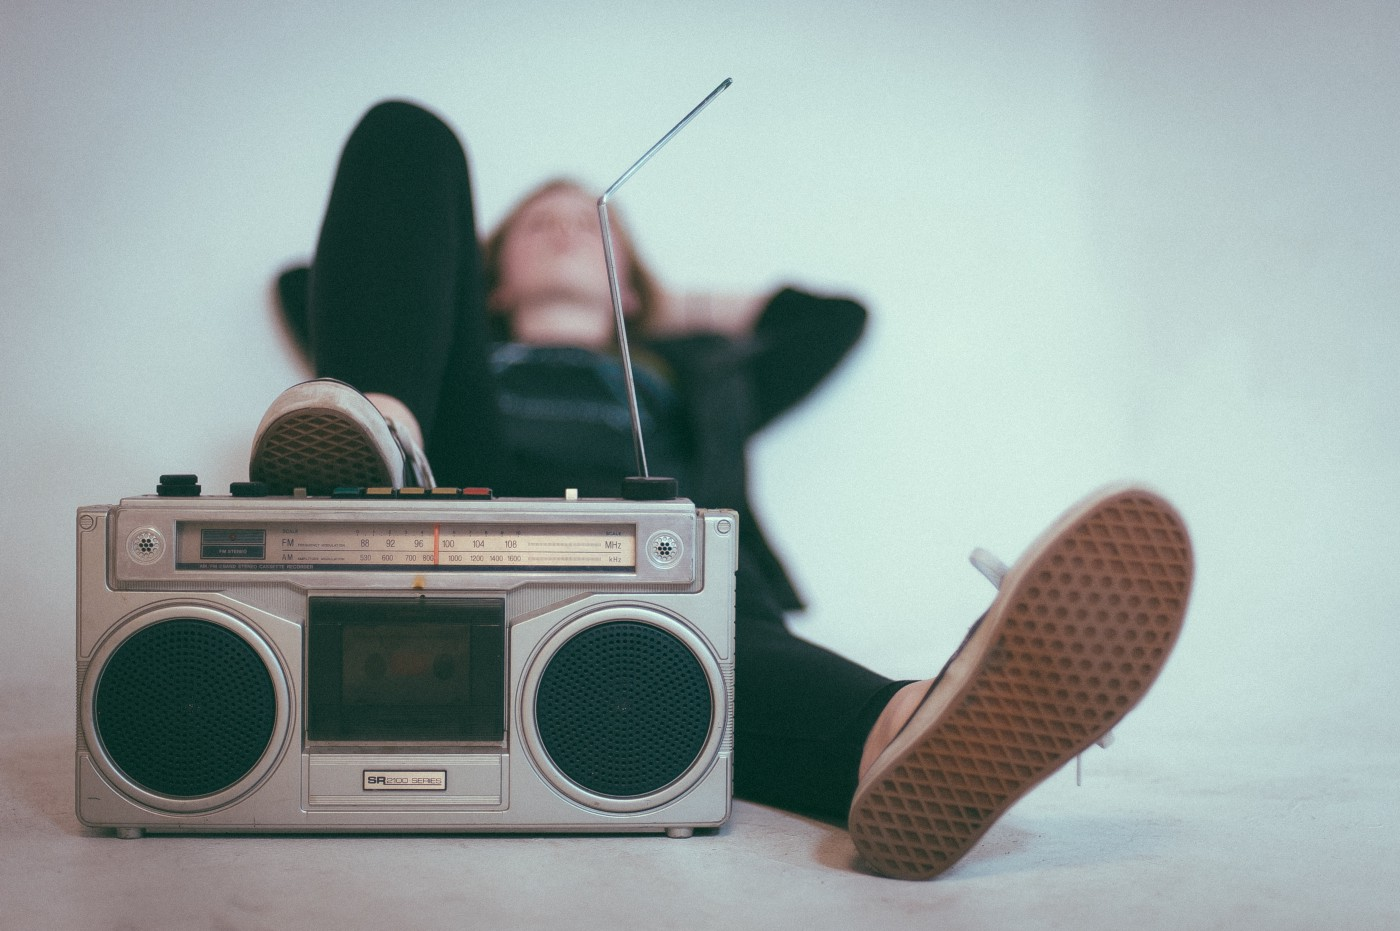 Man laying down with his sneaker up on a boom box. Background is plain white.